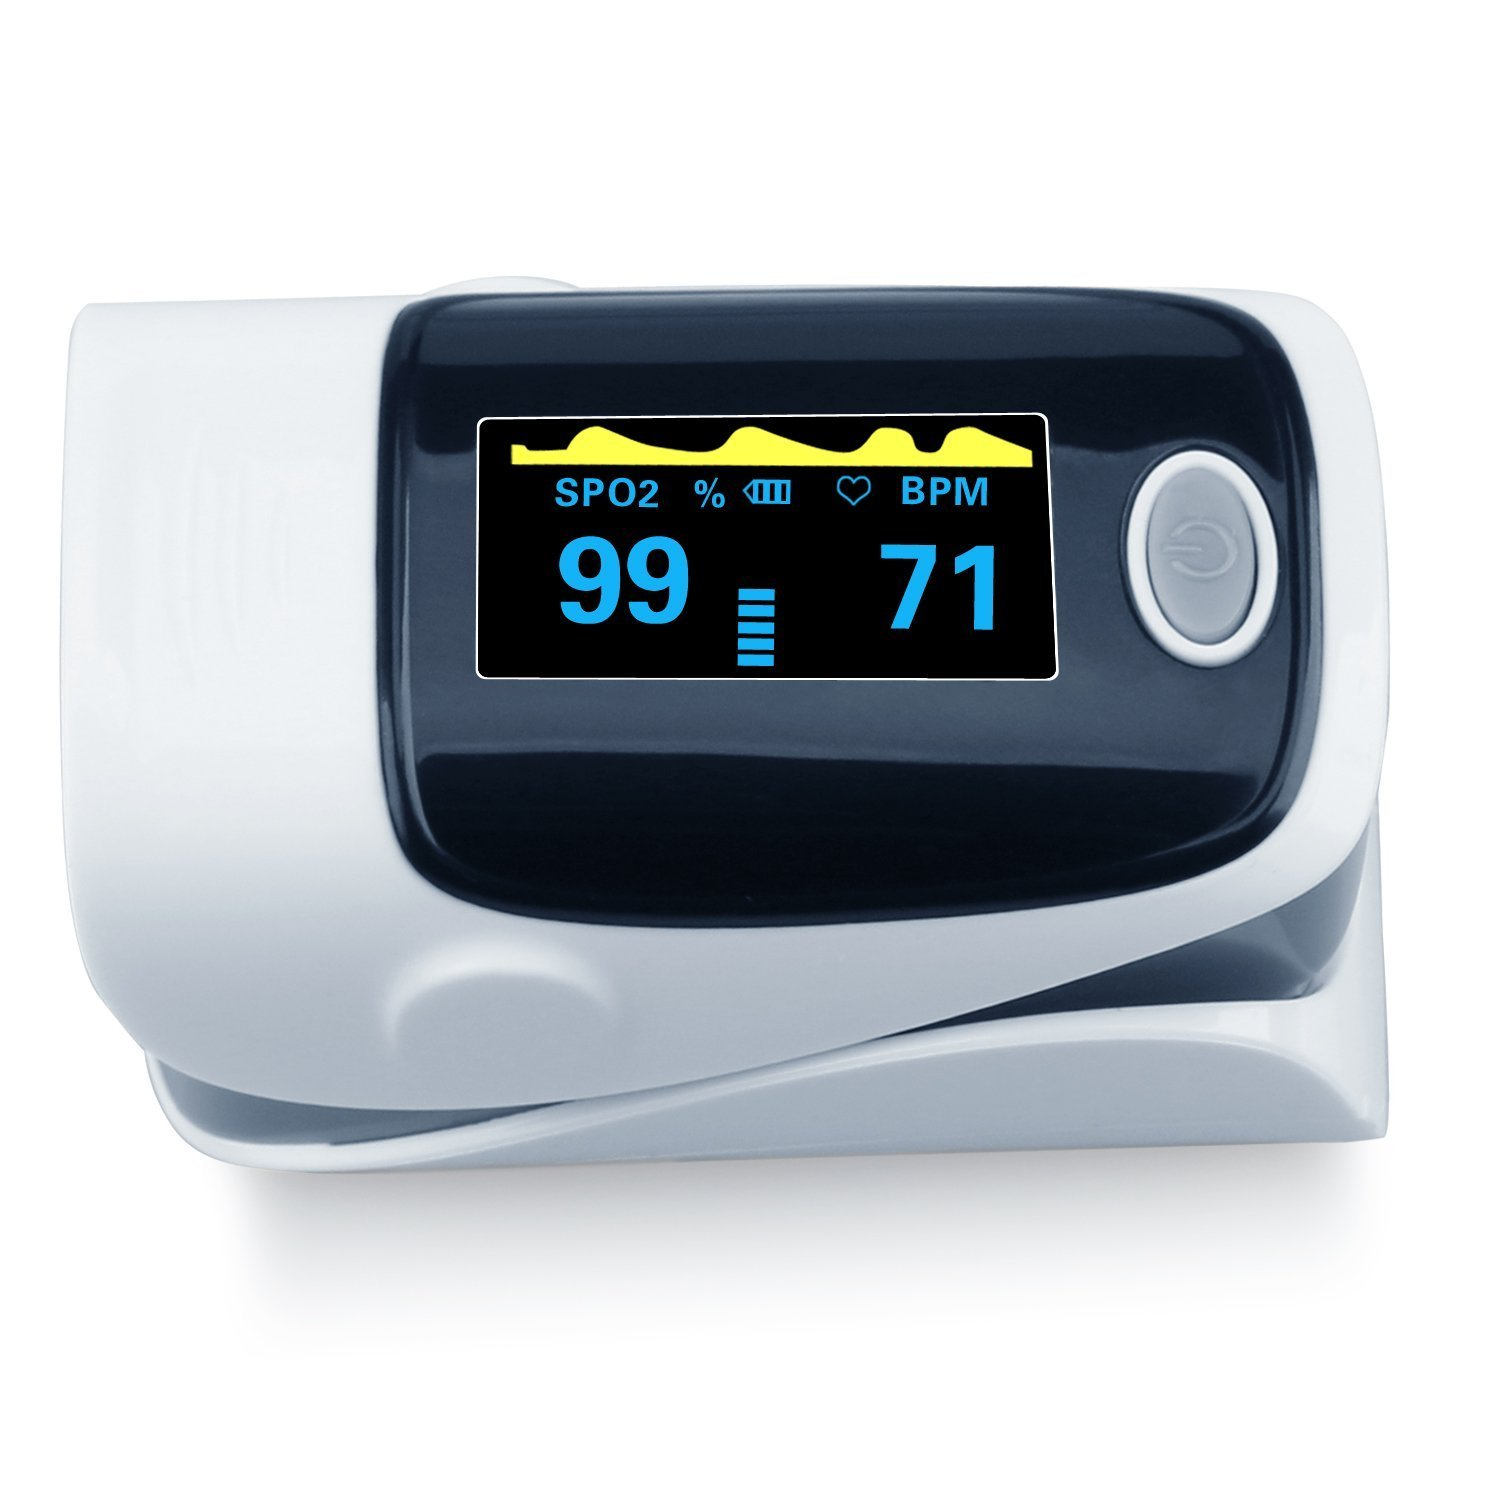 Pulse Oximeter, Finger Portable FDA Approved Digital Blood Oxygen and Pulse Sensor Meter with Alarm SPO2 For Adults and Children (Gray)